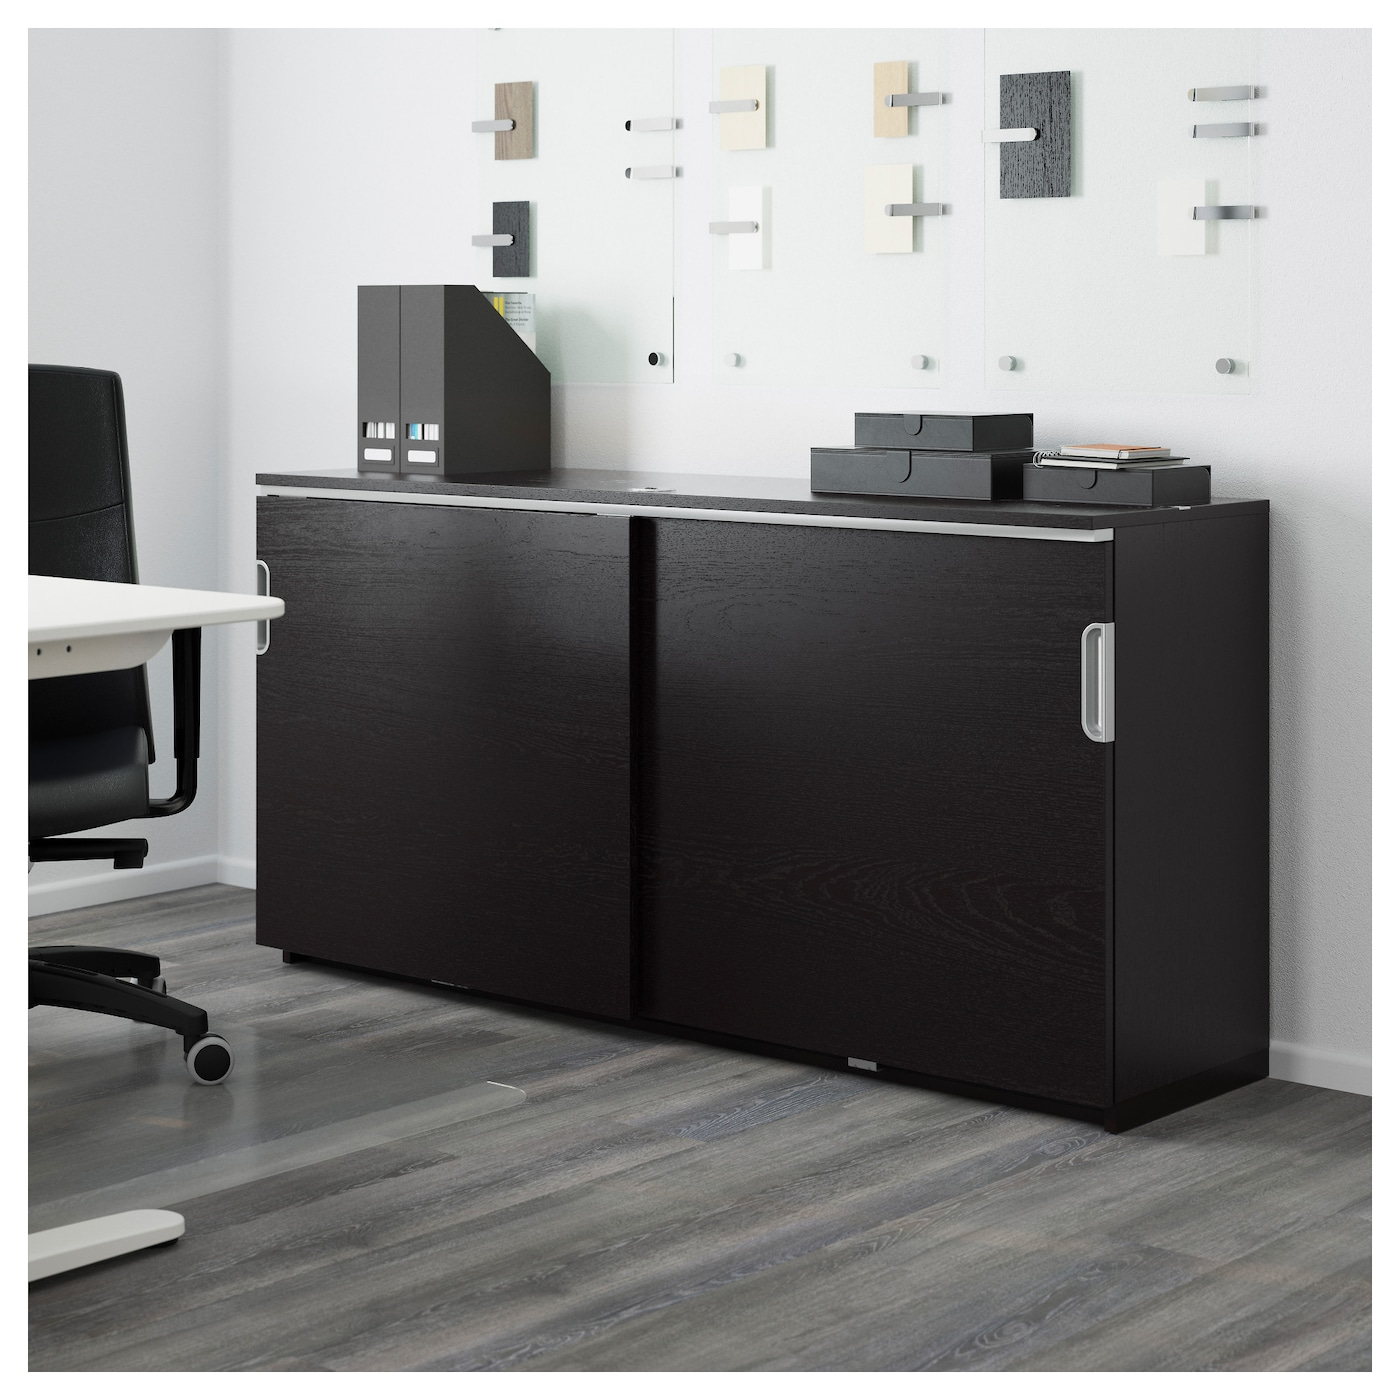 IKEA GALANT cabinet with sliding doors Integrated damper makes doors close silently and gently.